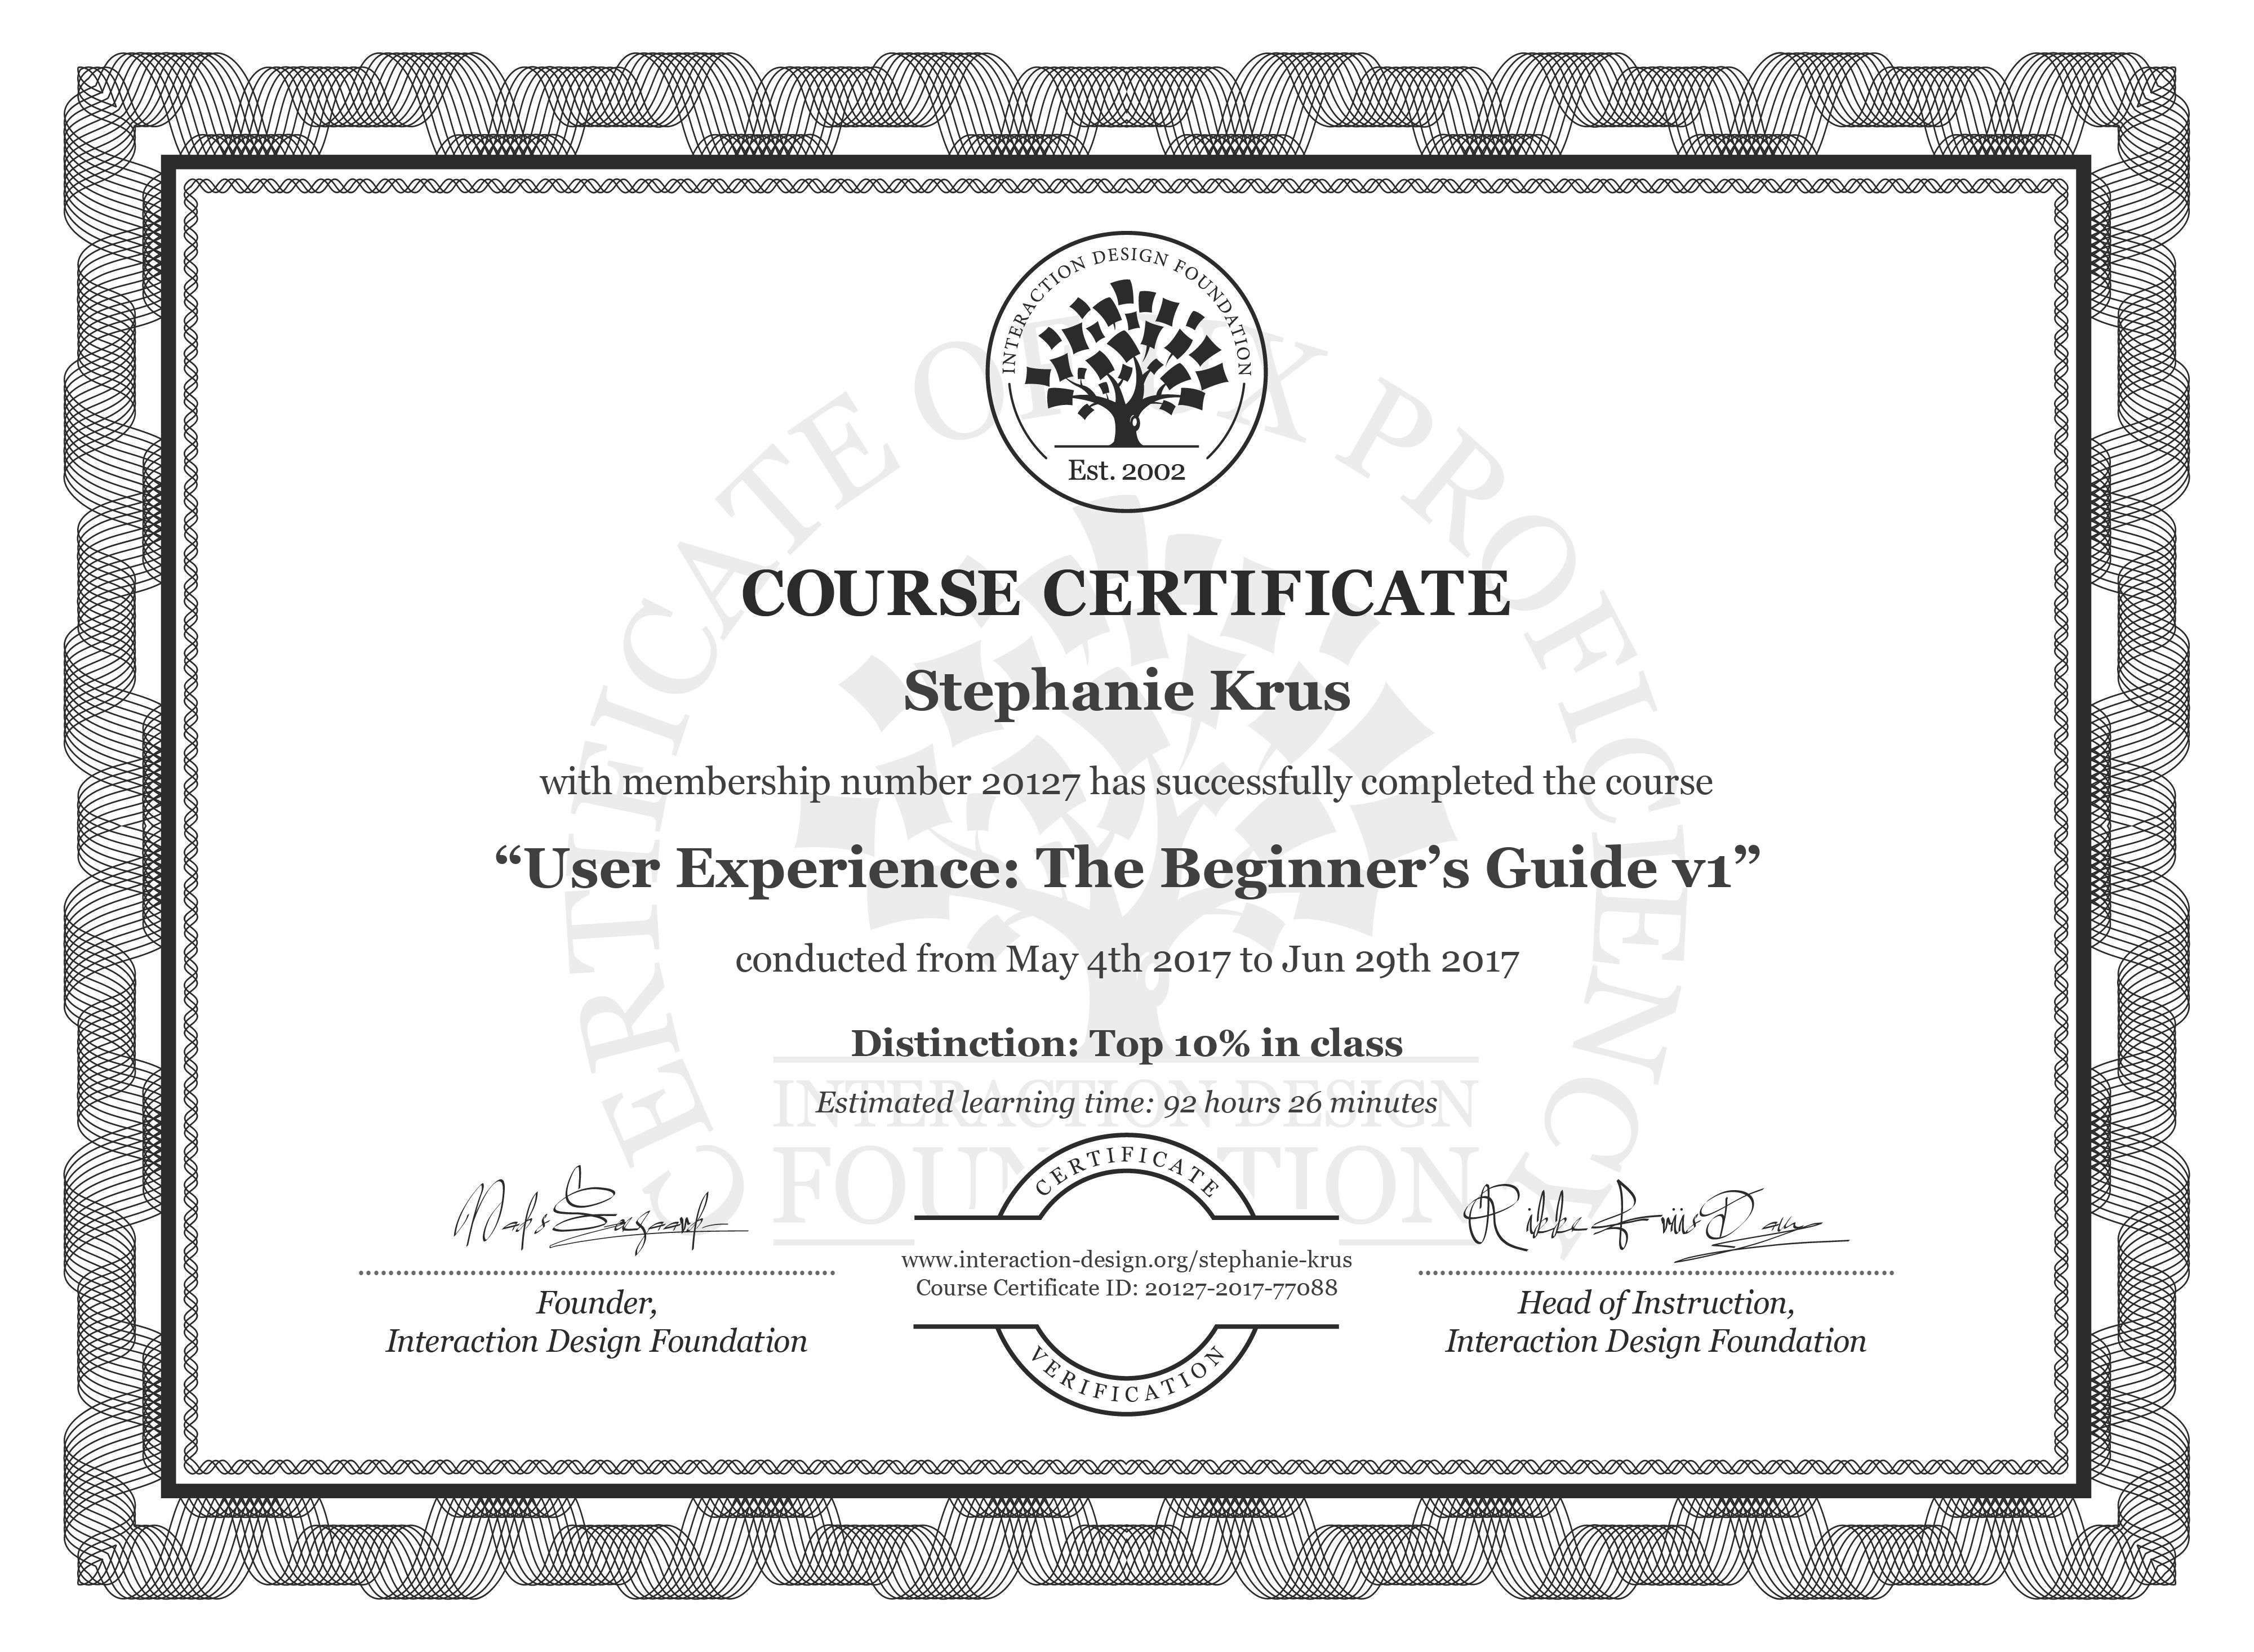 Stephanie Krus's Course Certificate: User Experience: The Beginner's Guide